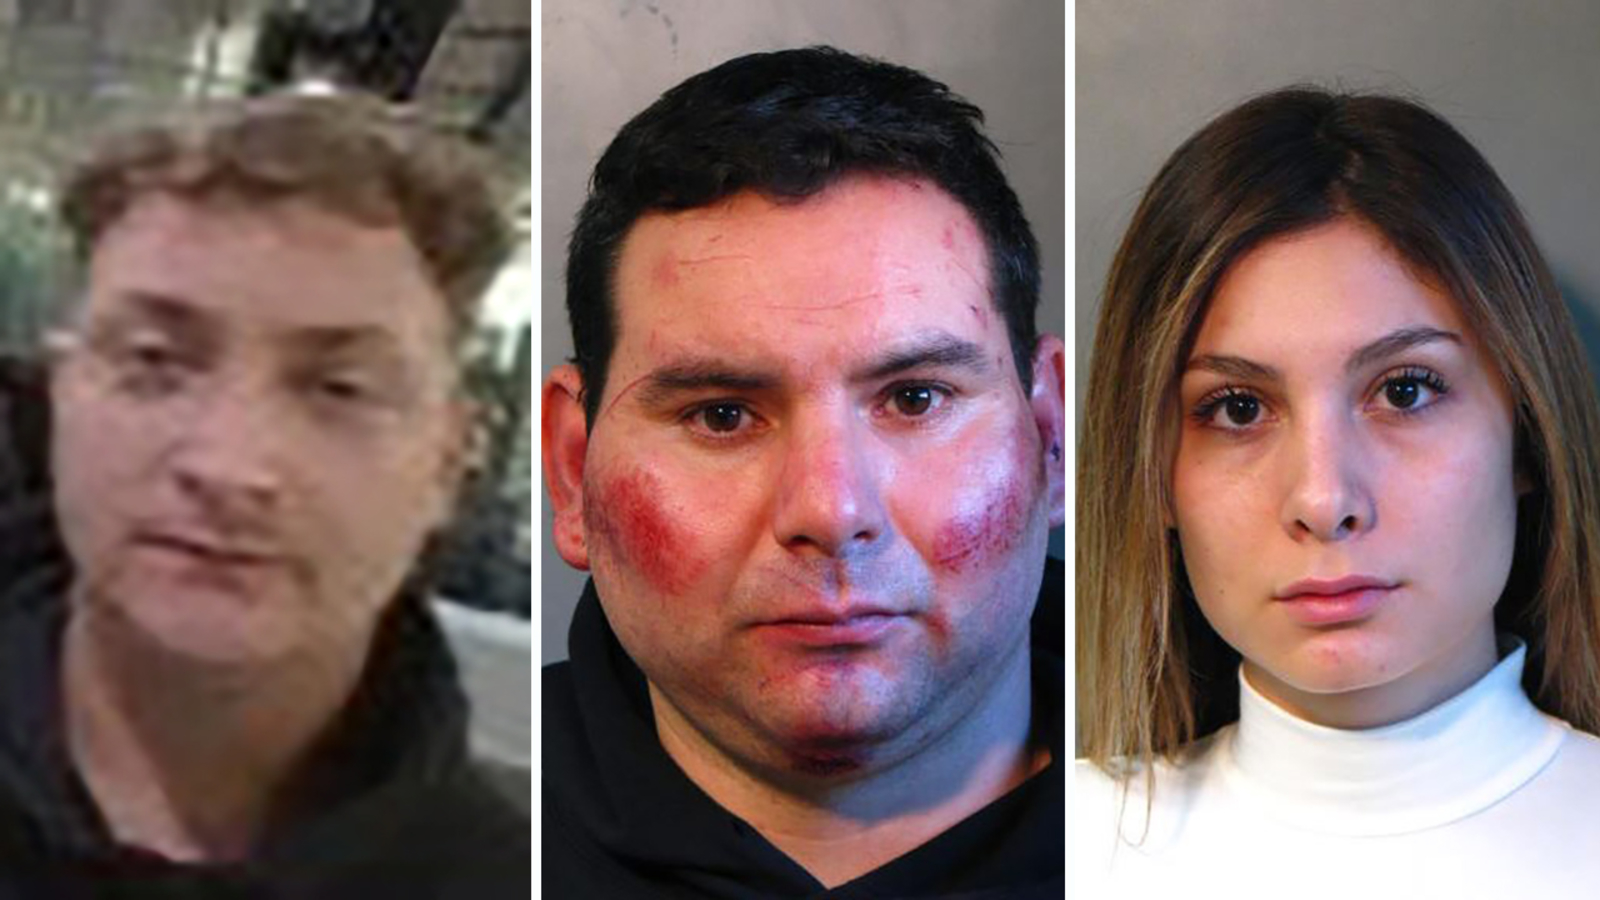 3 arrested, 1 sought in Long Island home burglary spree